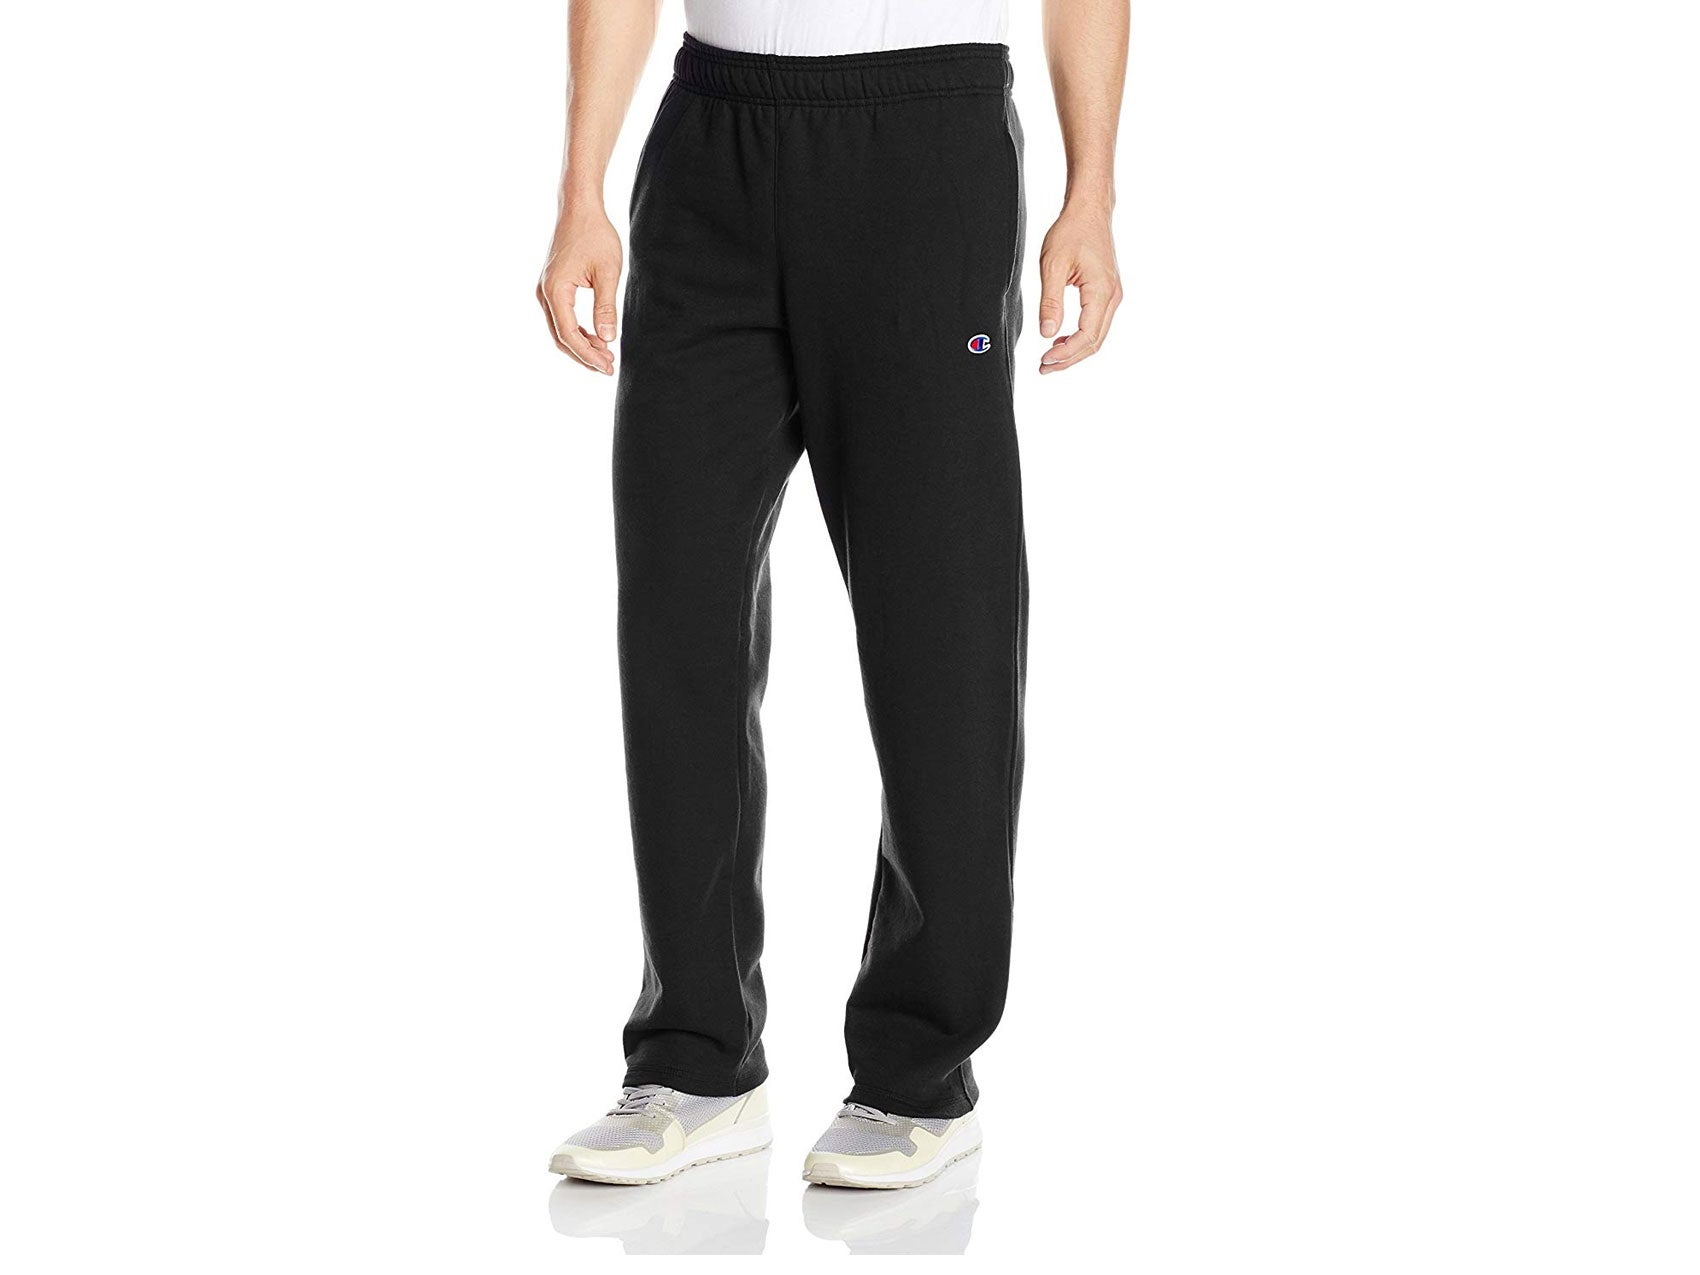 Champion Men's Powerblend Open Bottom Fleece Pant